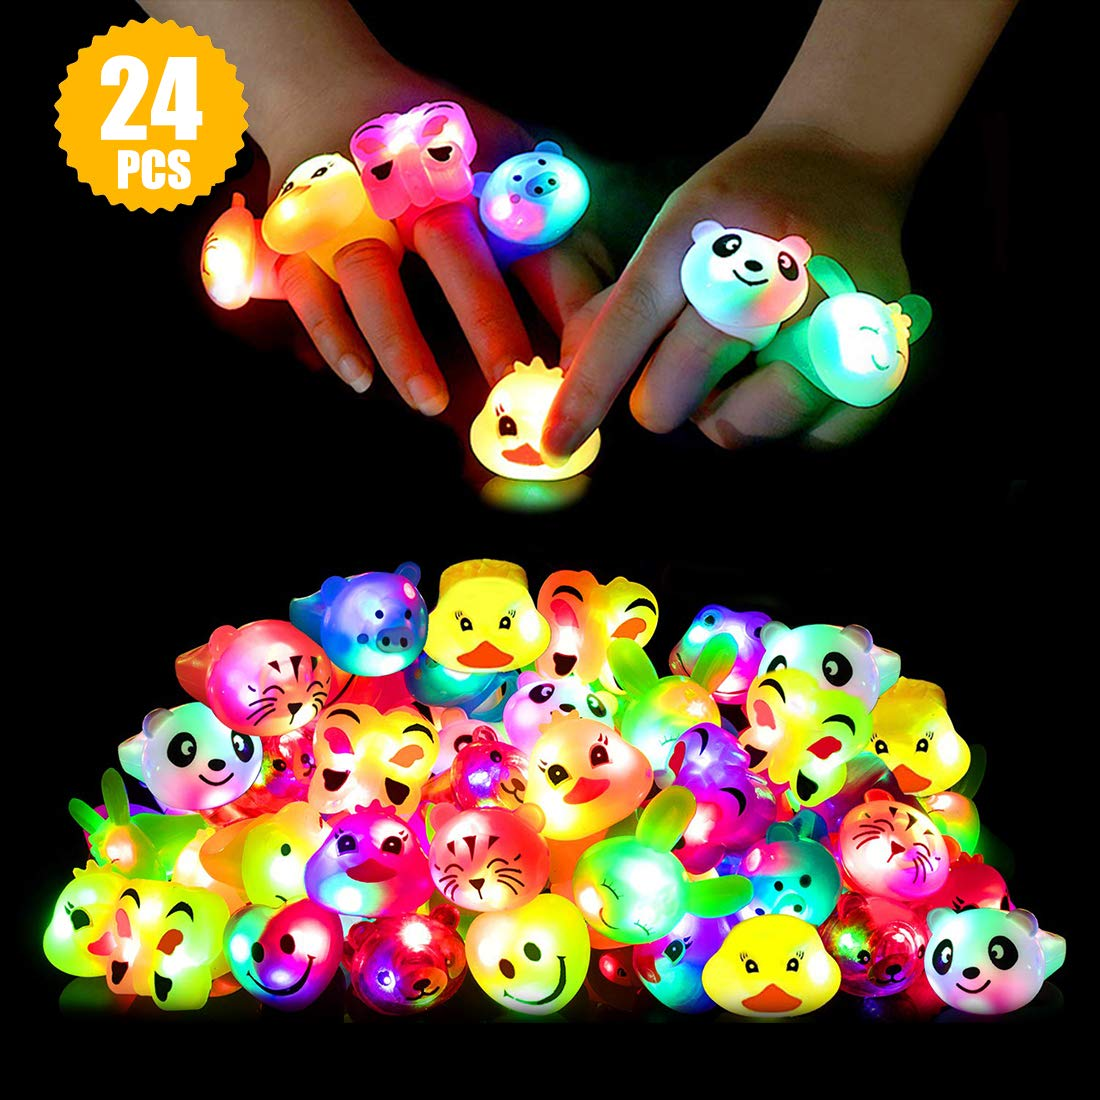 Light Up Rings Birthday Party Favors for Kids Prizes Flashing 24 Pack LED Jelly Rings Novelty Bulk Toys Boys Girls Gift Glow in The Dark Thanksgiving Christmas Party Supplies